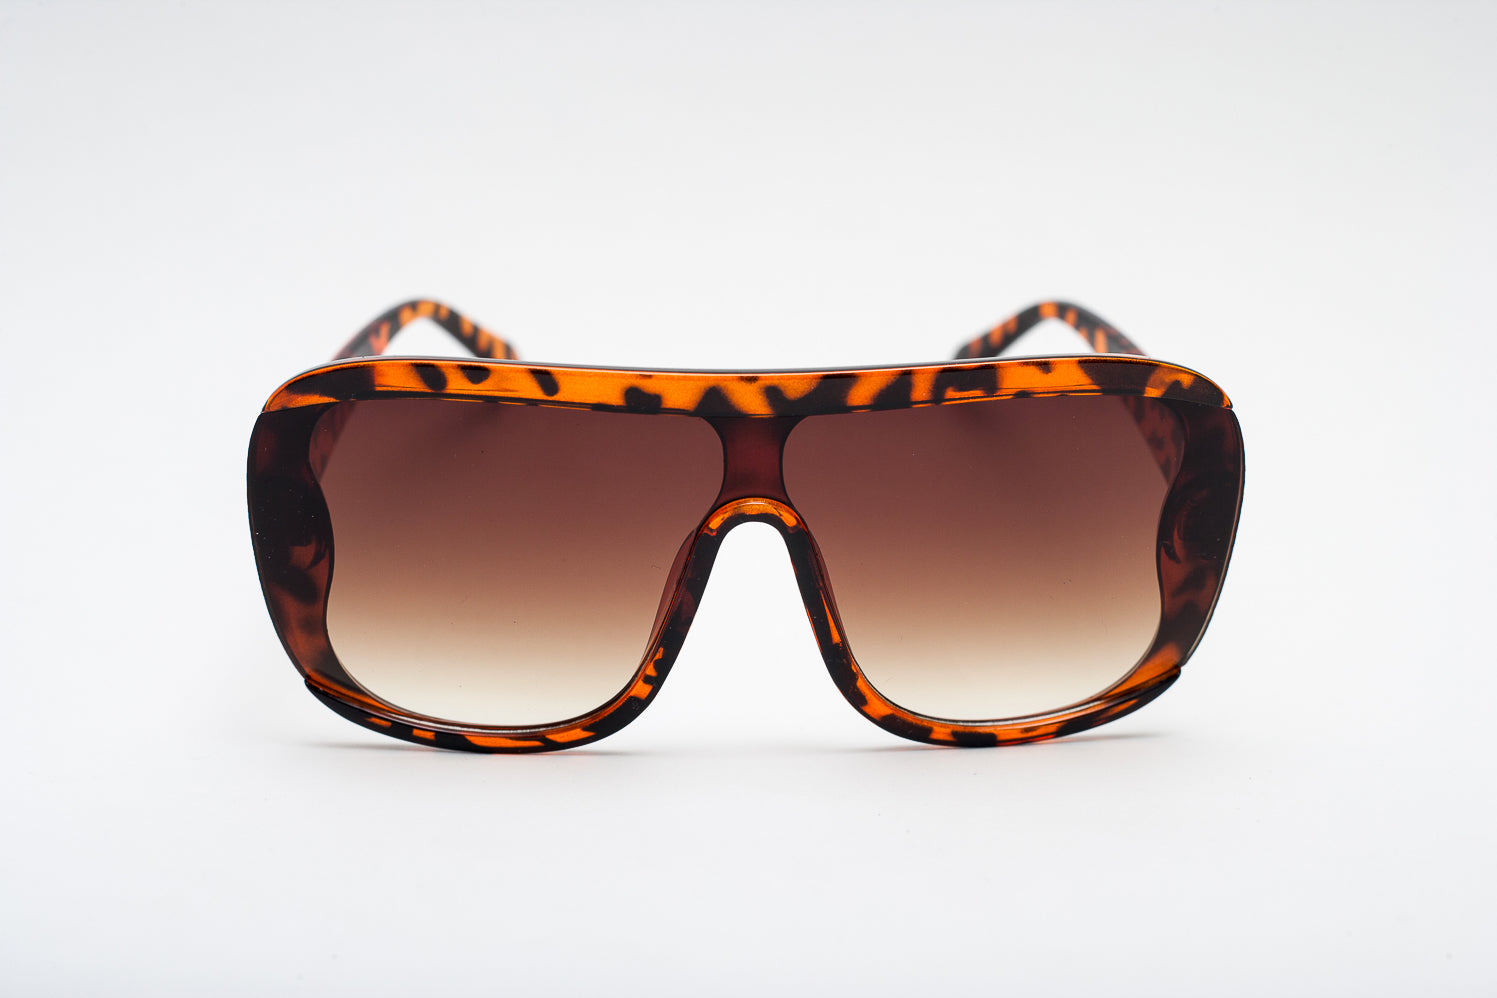 228 Shade - Tortoise Orange